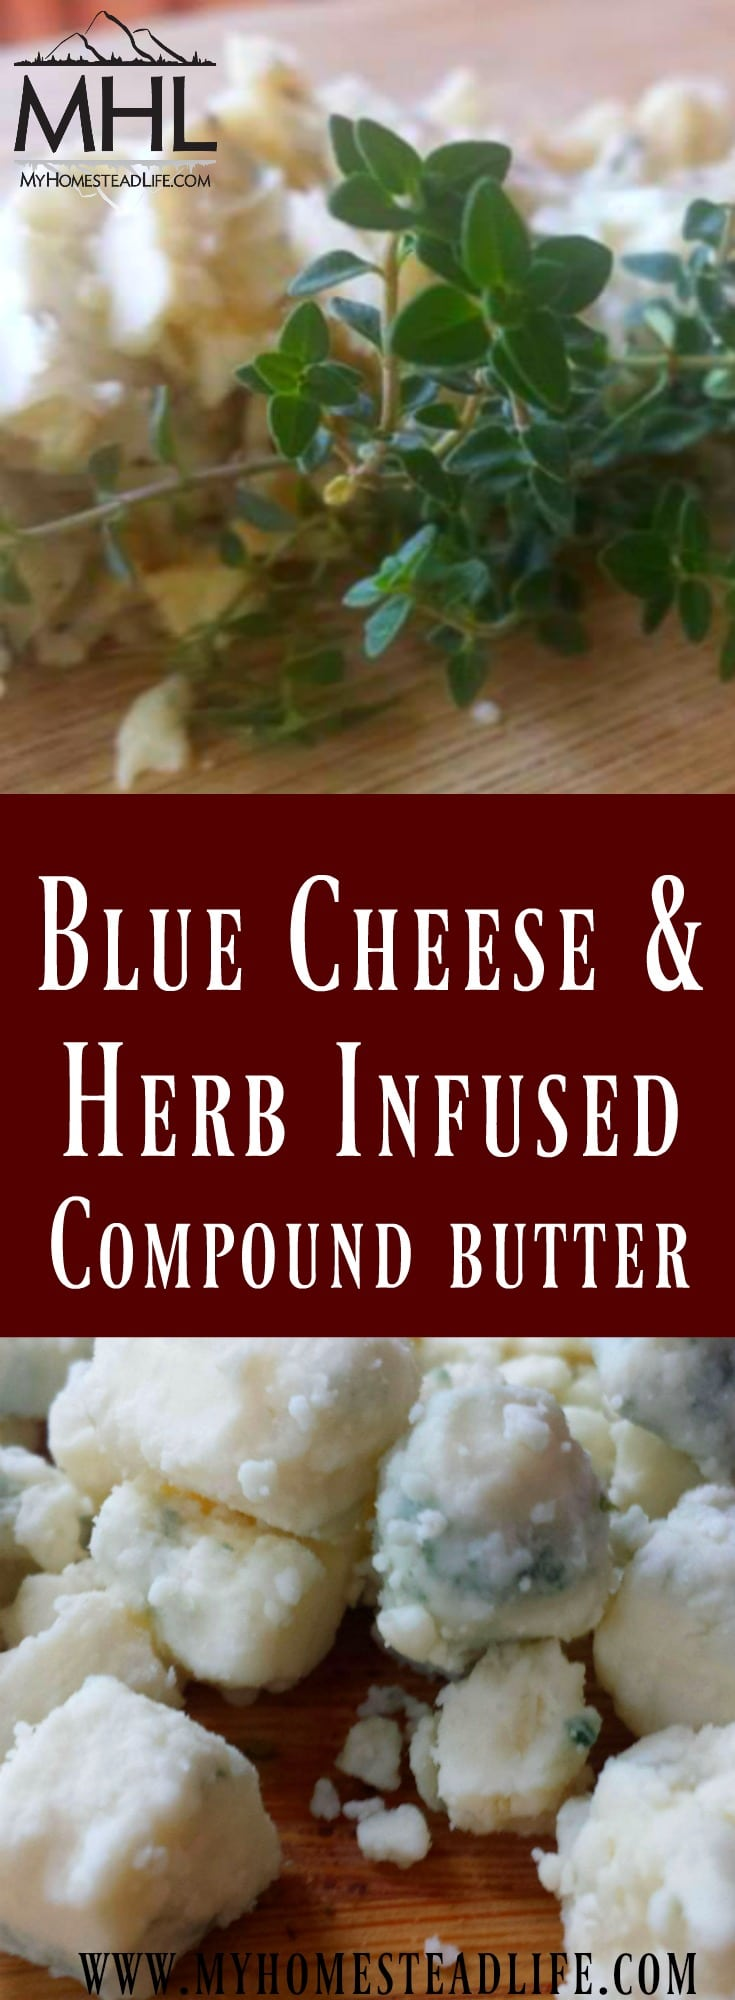 Blue Cheese & Herb Infused Compound Butter